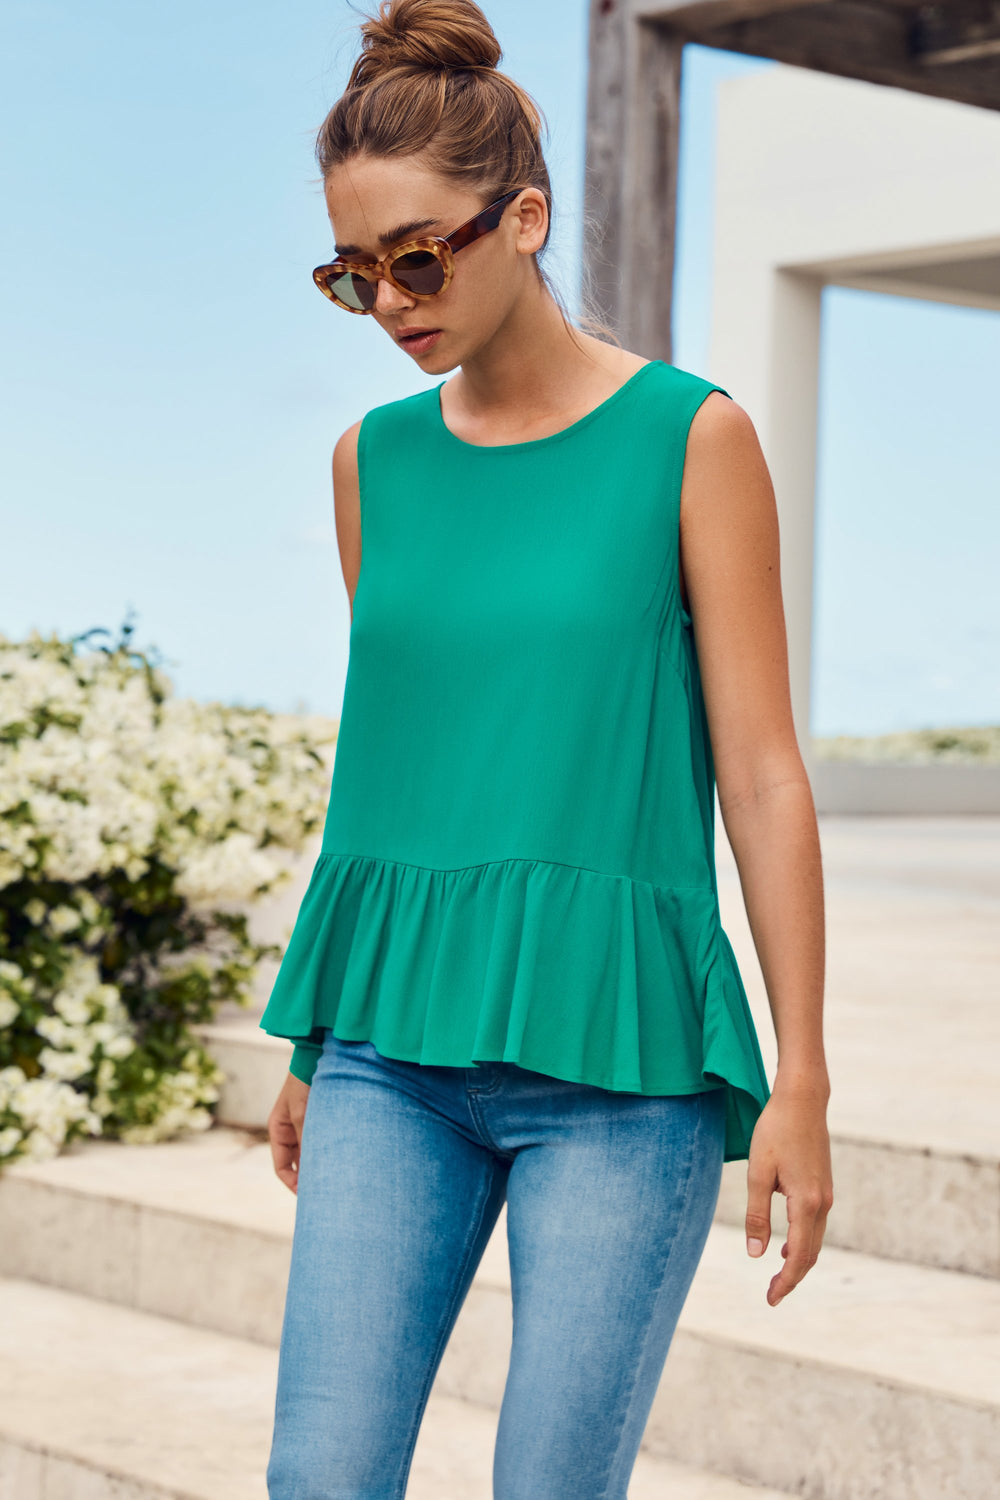 Celeste Top In Jade